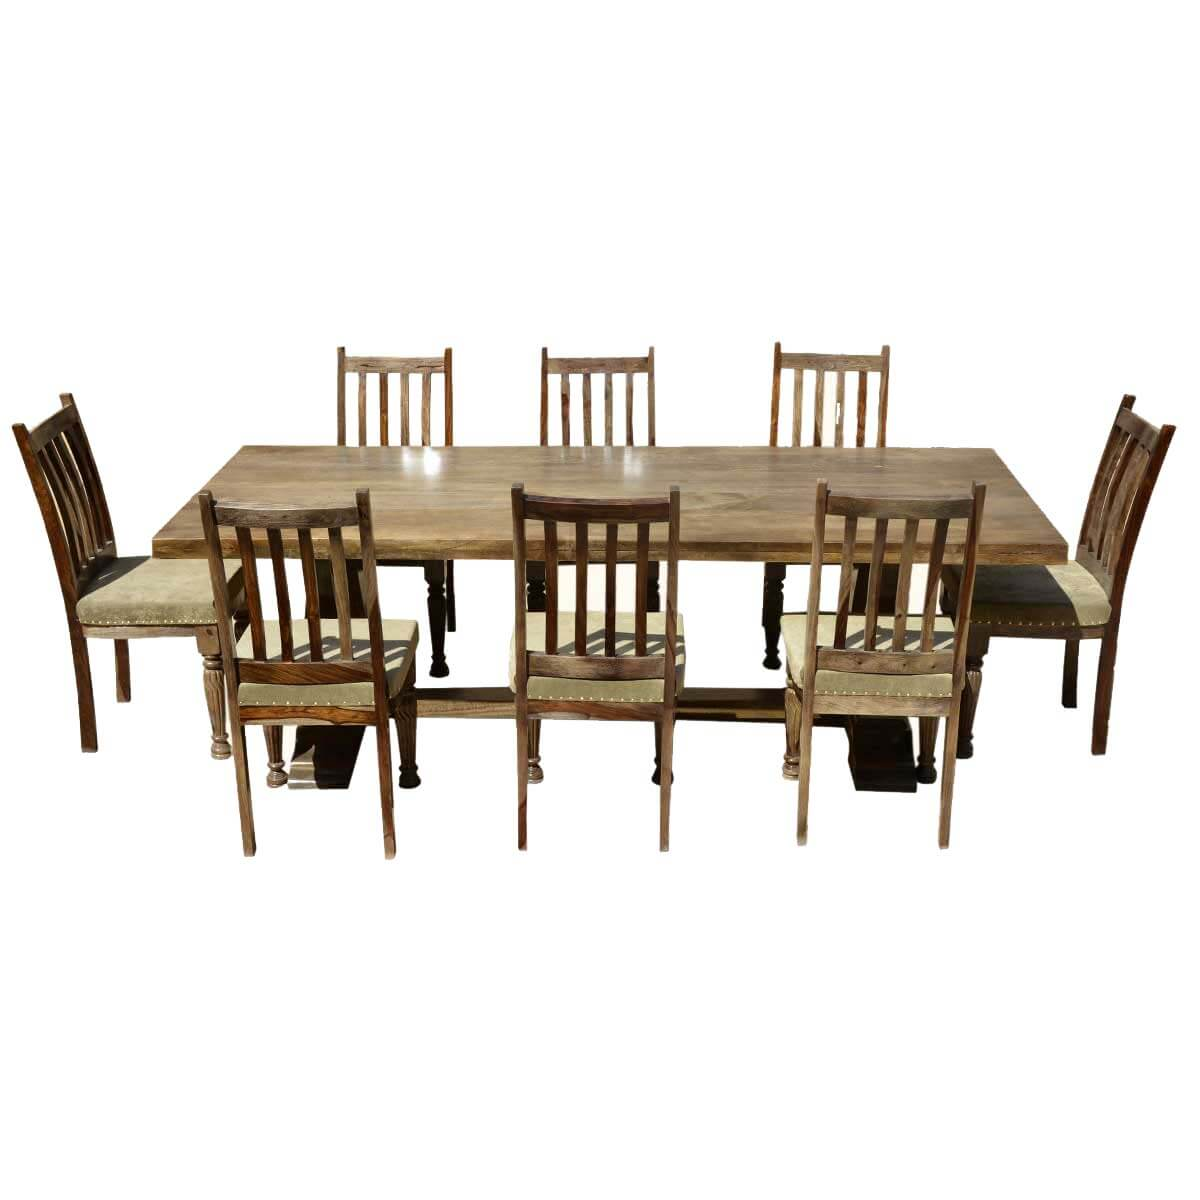 Farmhouse Table And Chairs Set Farmhouse Solid Wood Trestle Rustic Dining Table